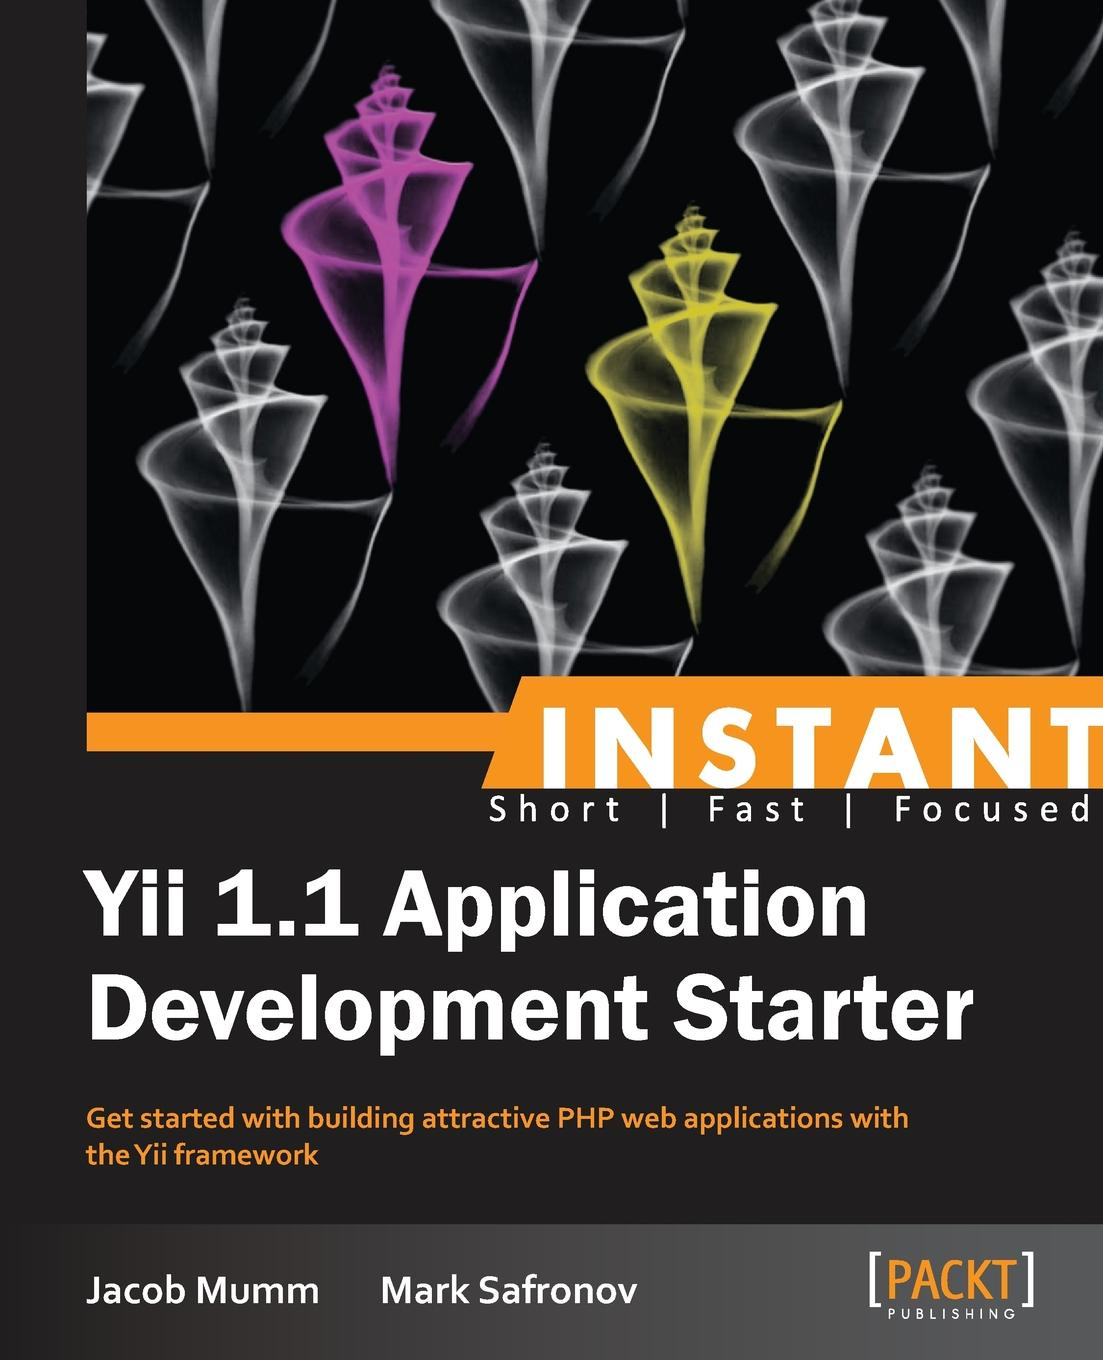 Jacob Mumm, Mark Safronov Instant Yii 1.1 Application Development Starter uday sawant instant building multi page forms with yii how to